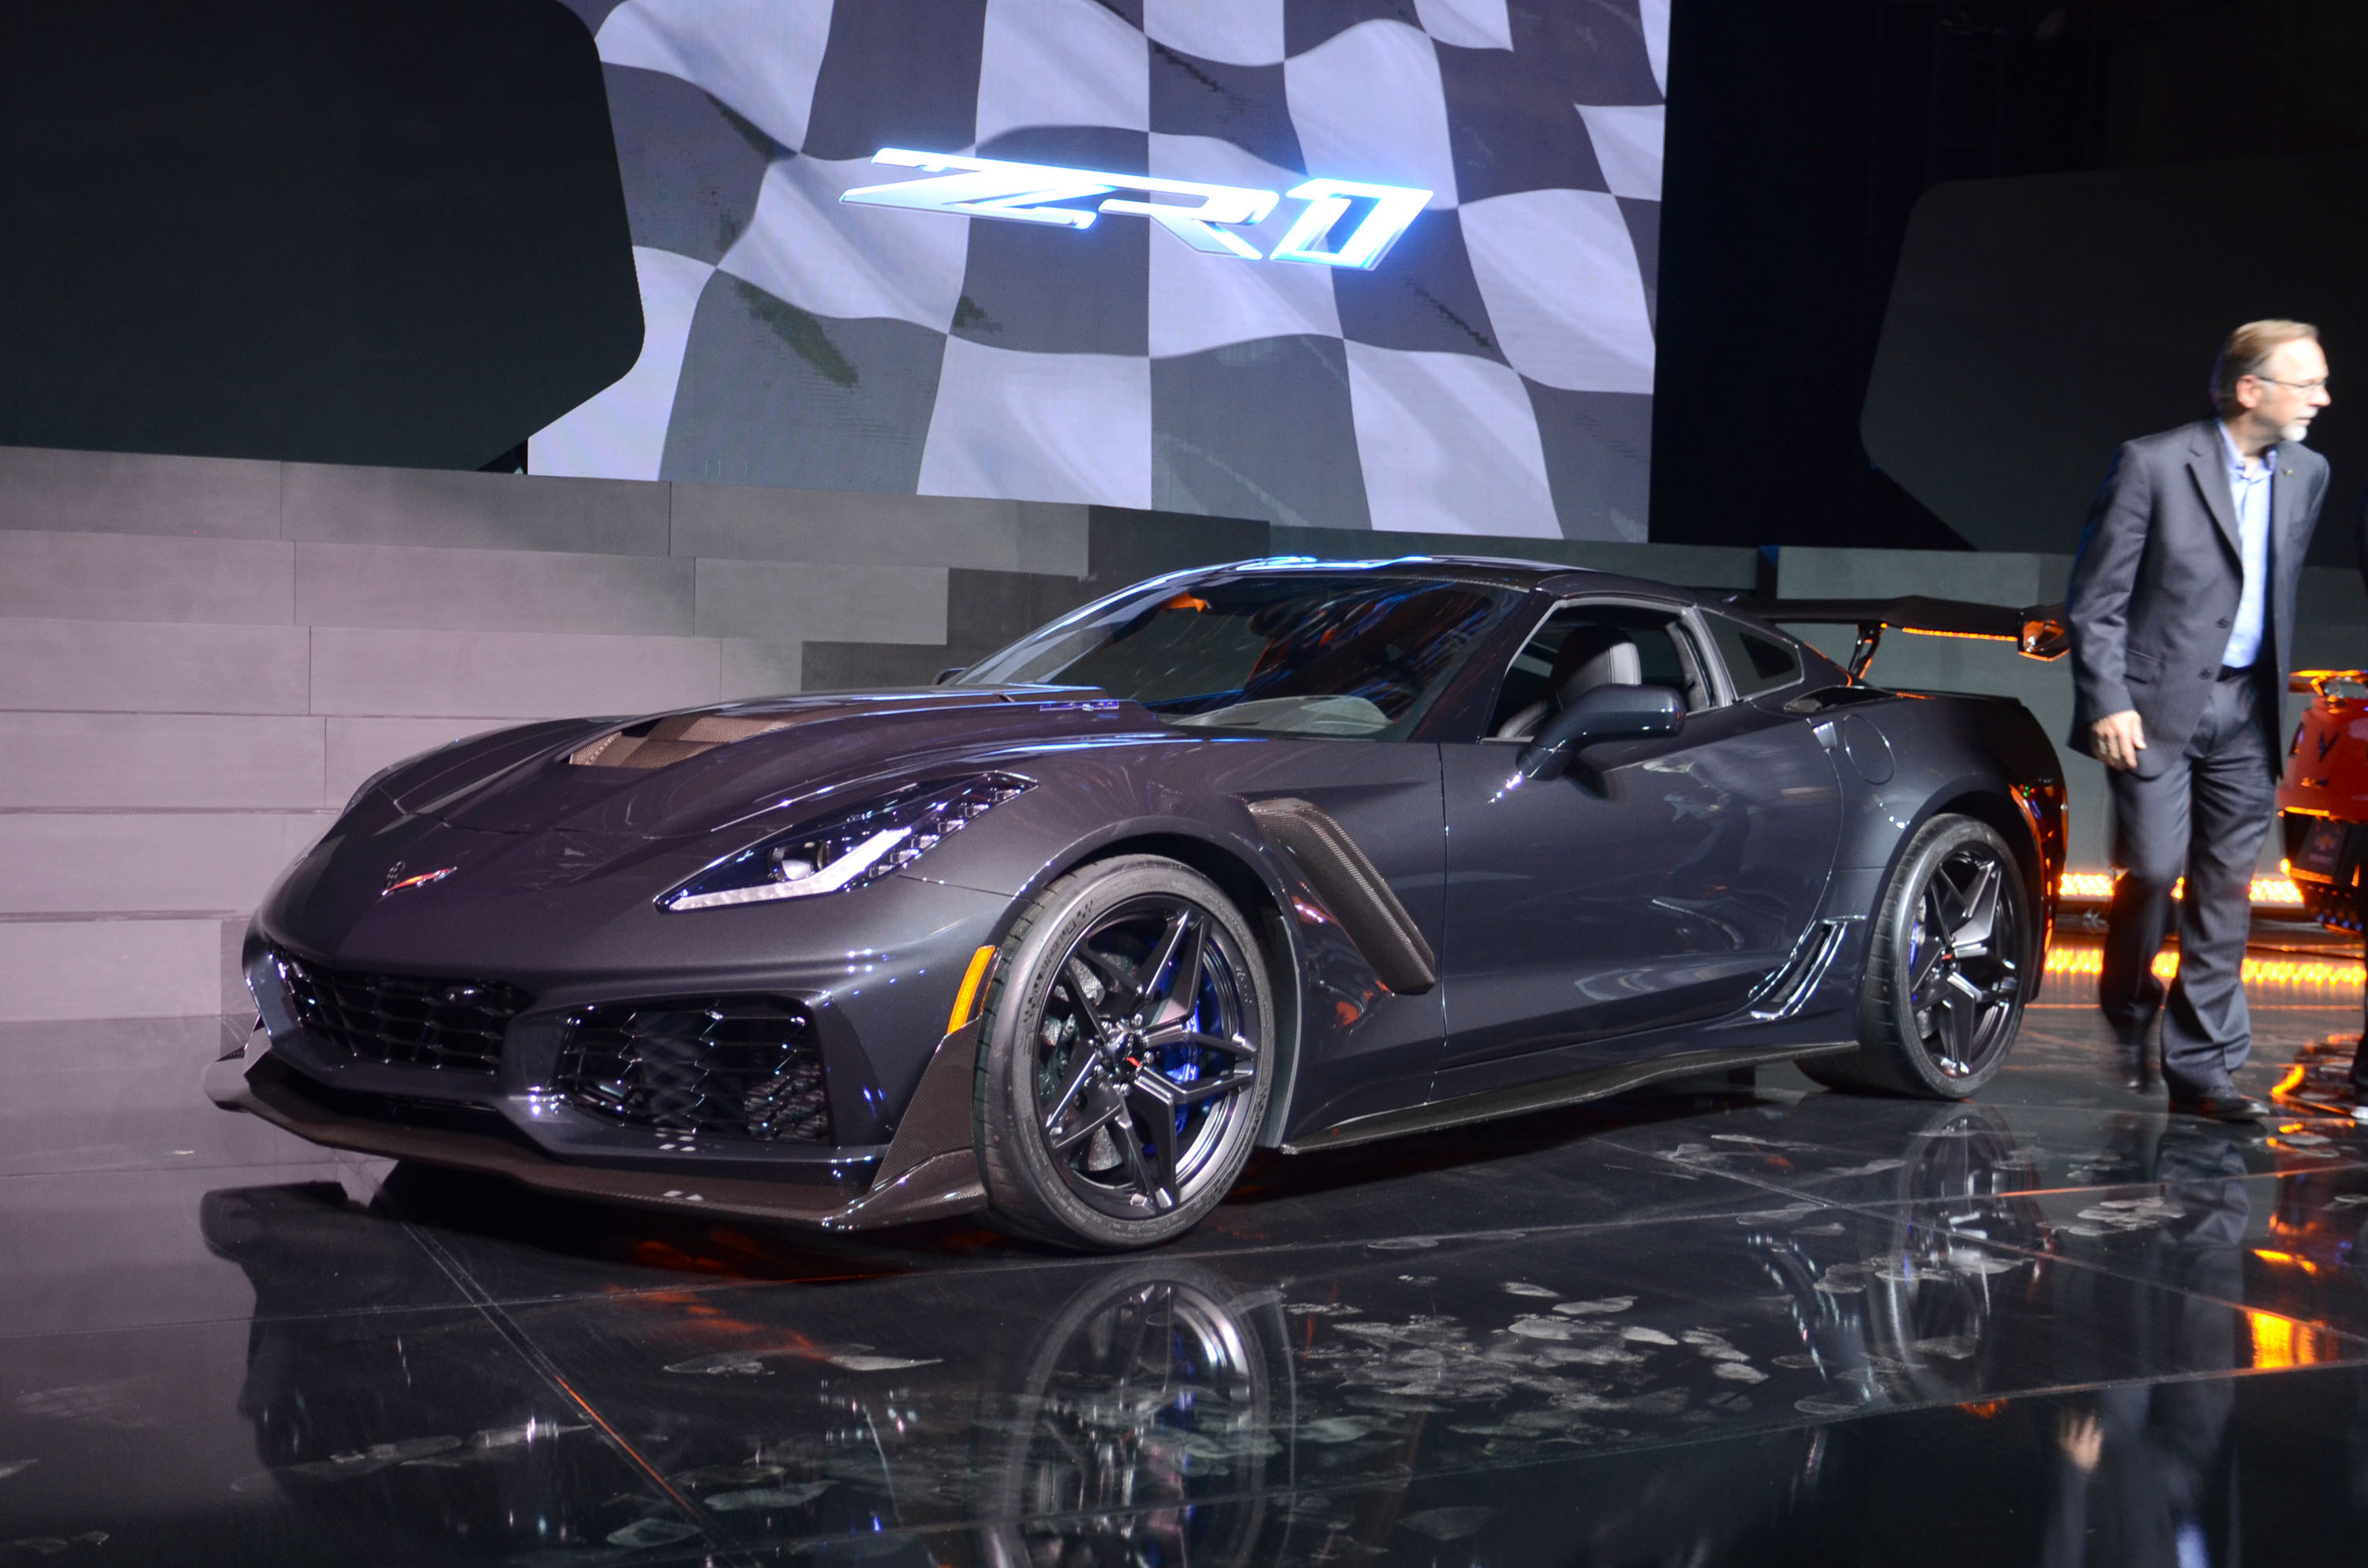 2017 los angeles auto show chevrolet adds a convertible to the corvette zr1 mix motor illustrated. Black Bedroom Furniture Sets. Home Design Ideas